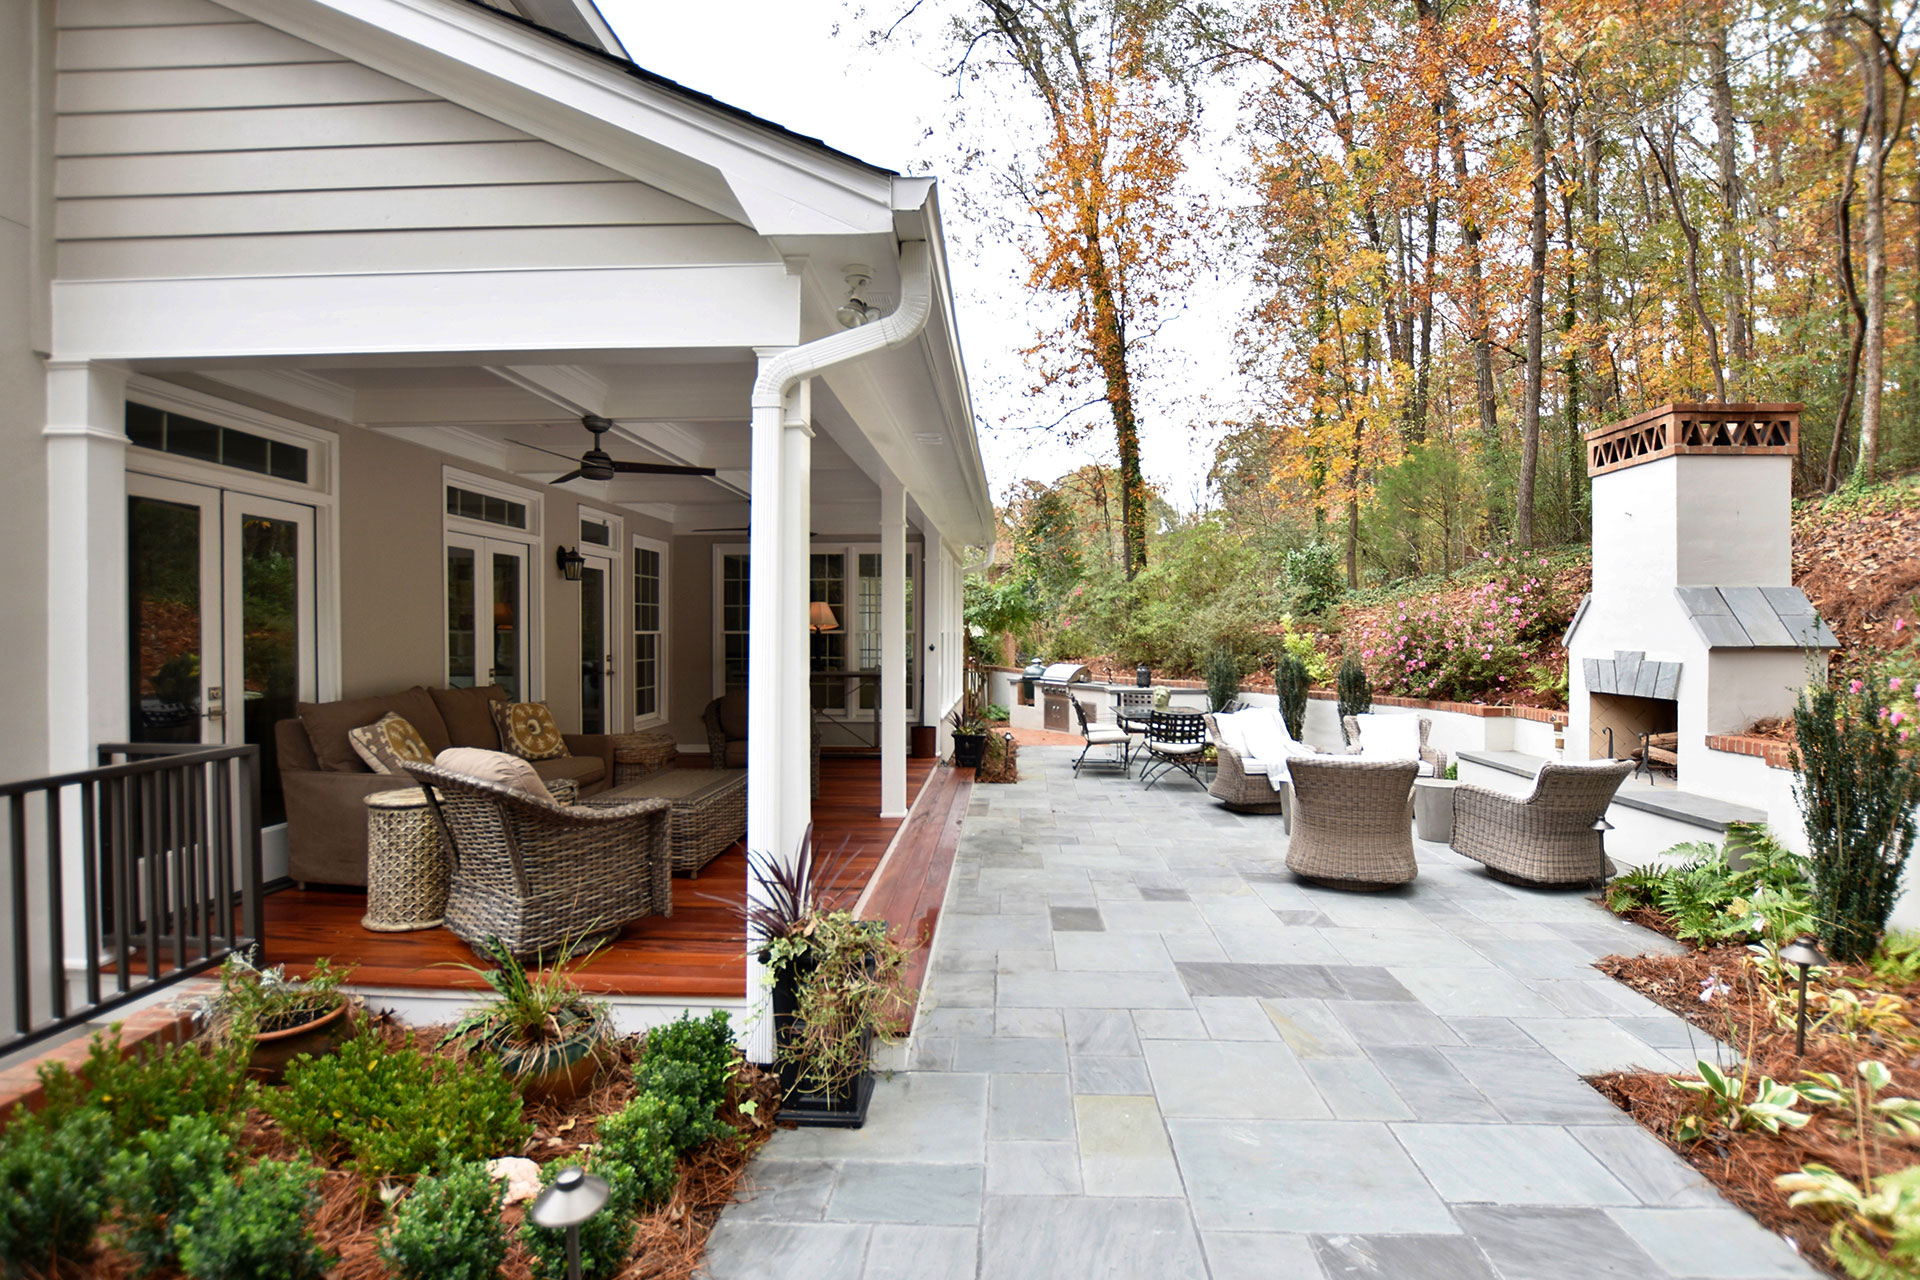 Outdoor Living Room and Outdoor Fireplace